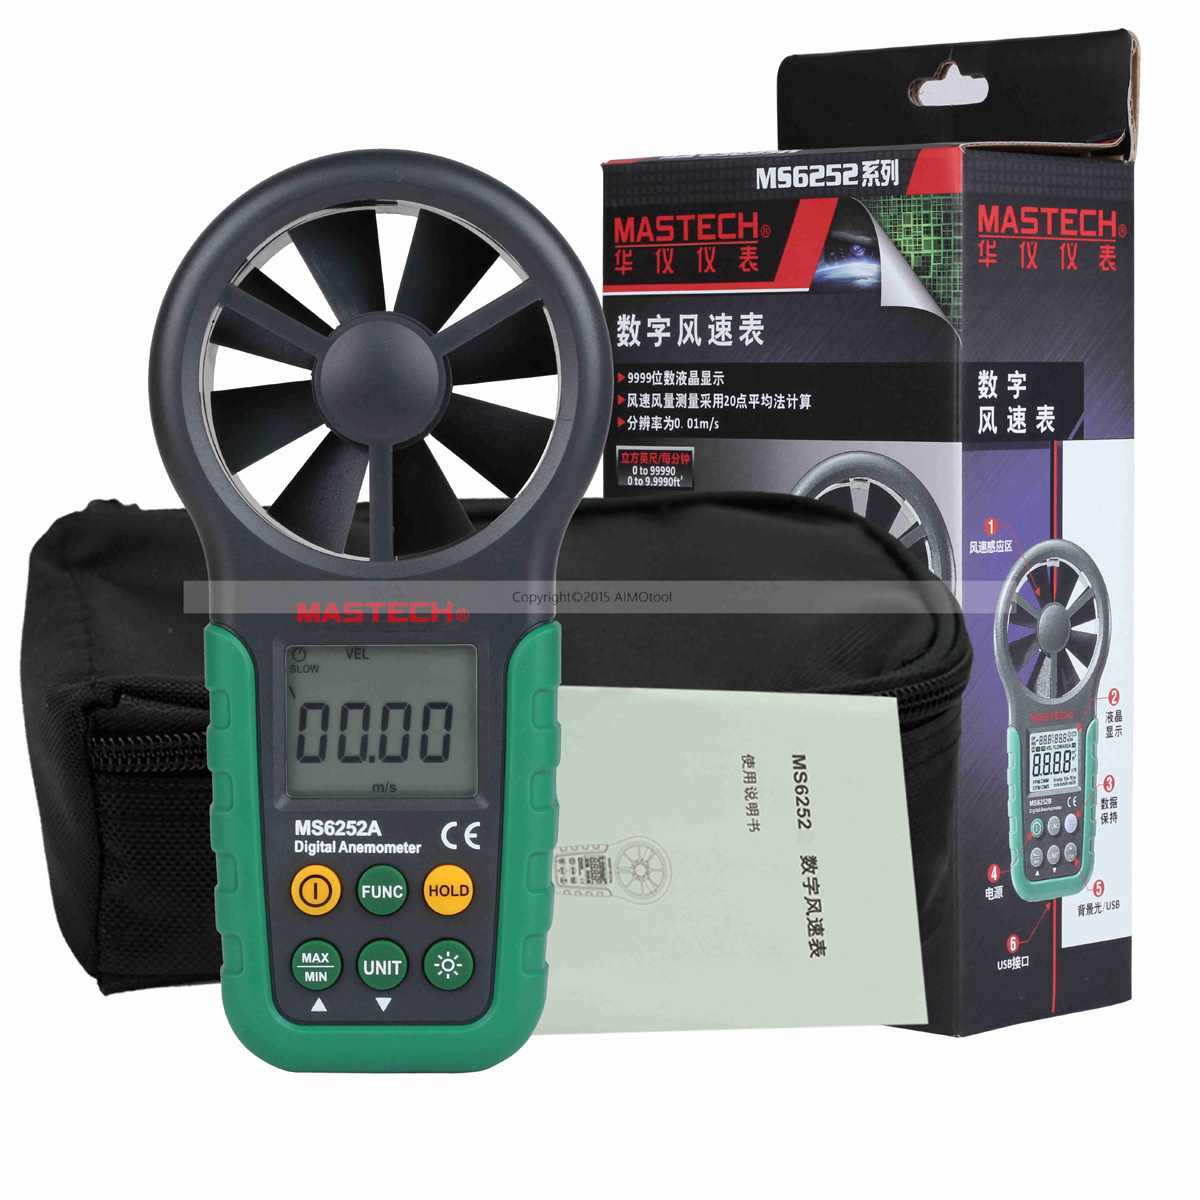 Me029 Mastech Ms A Handheld Digital Anemometer Wind